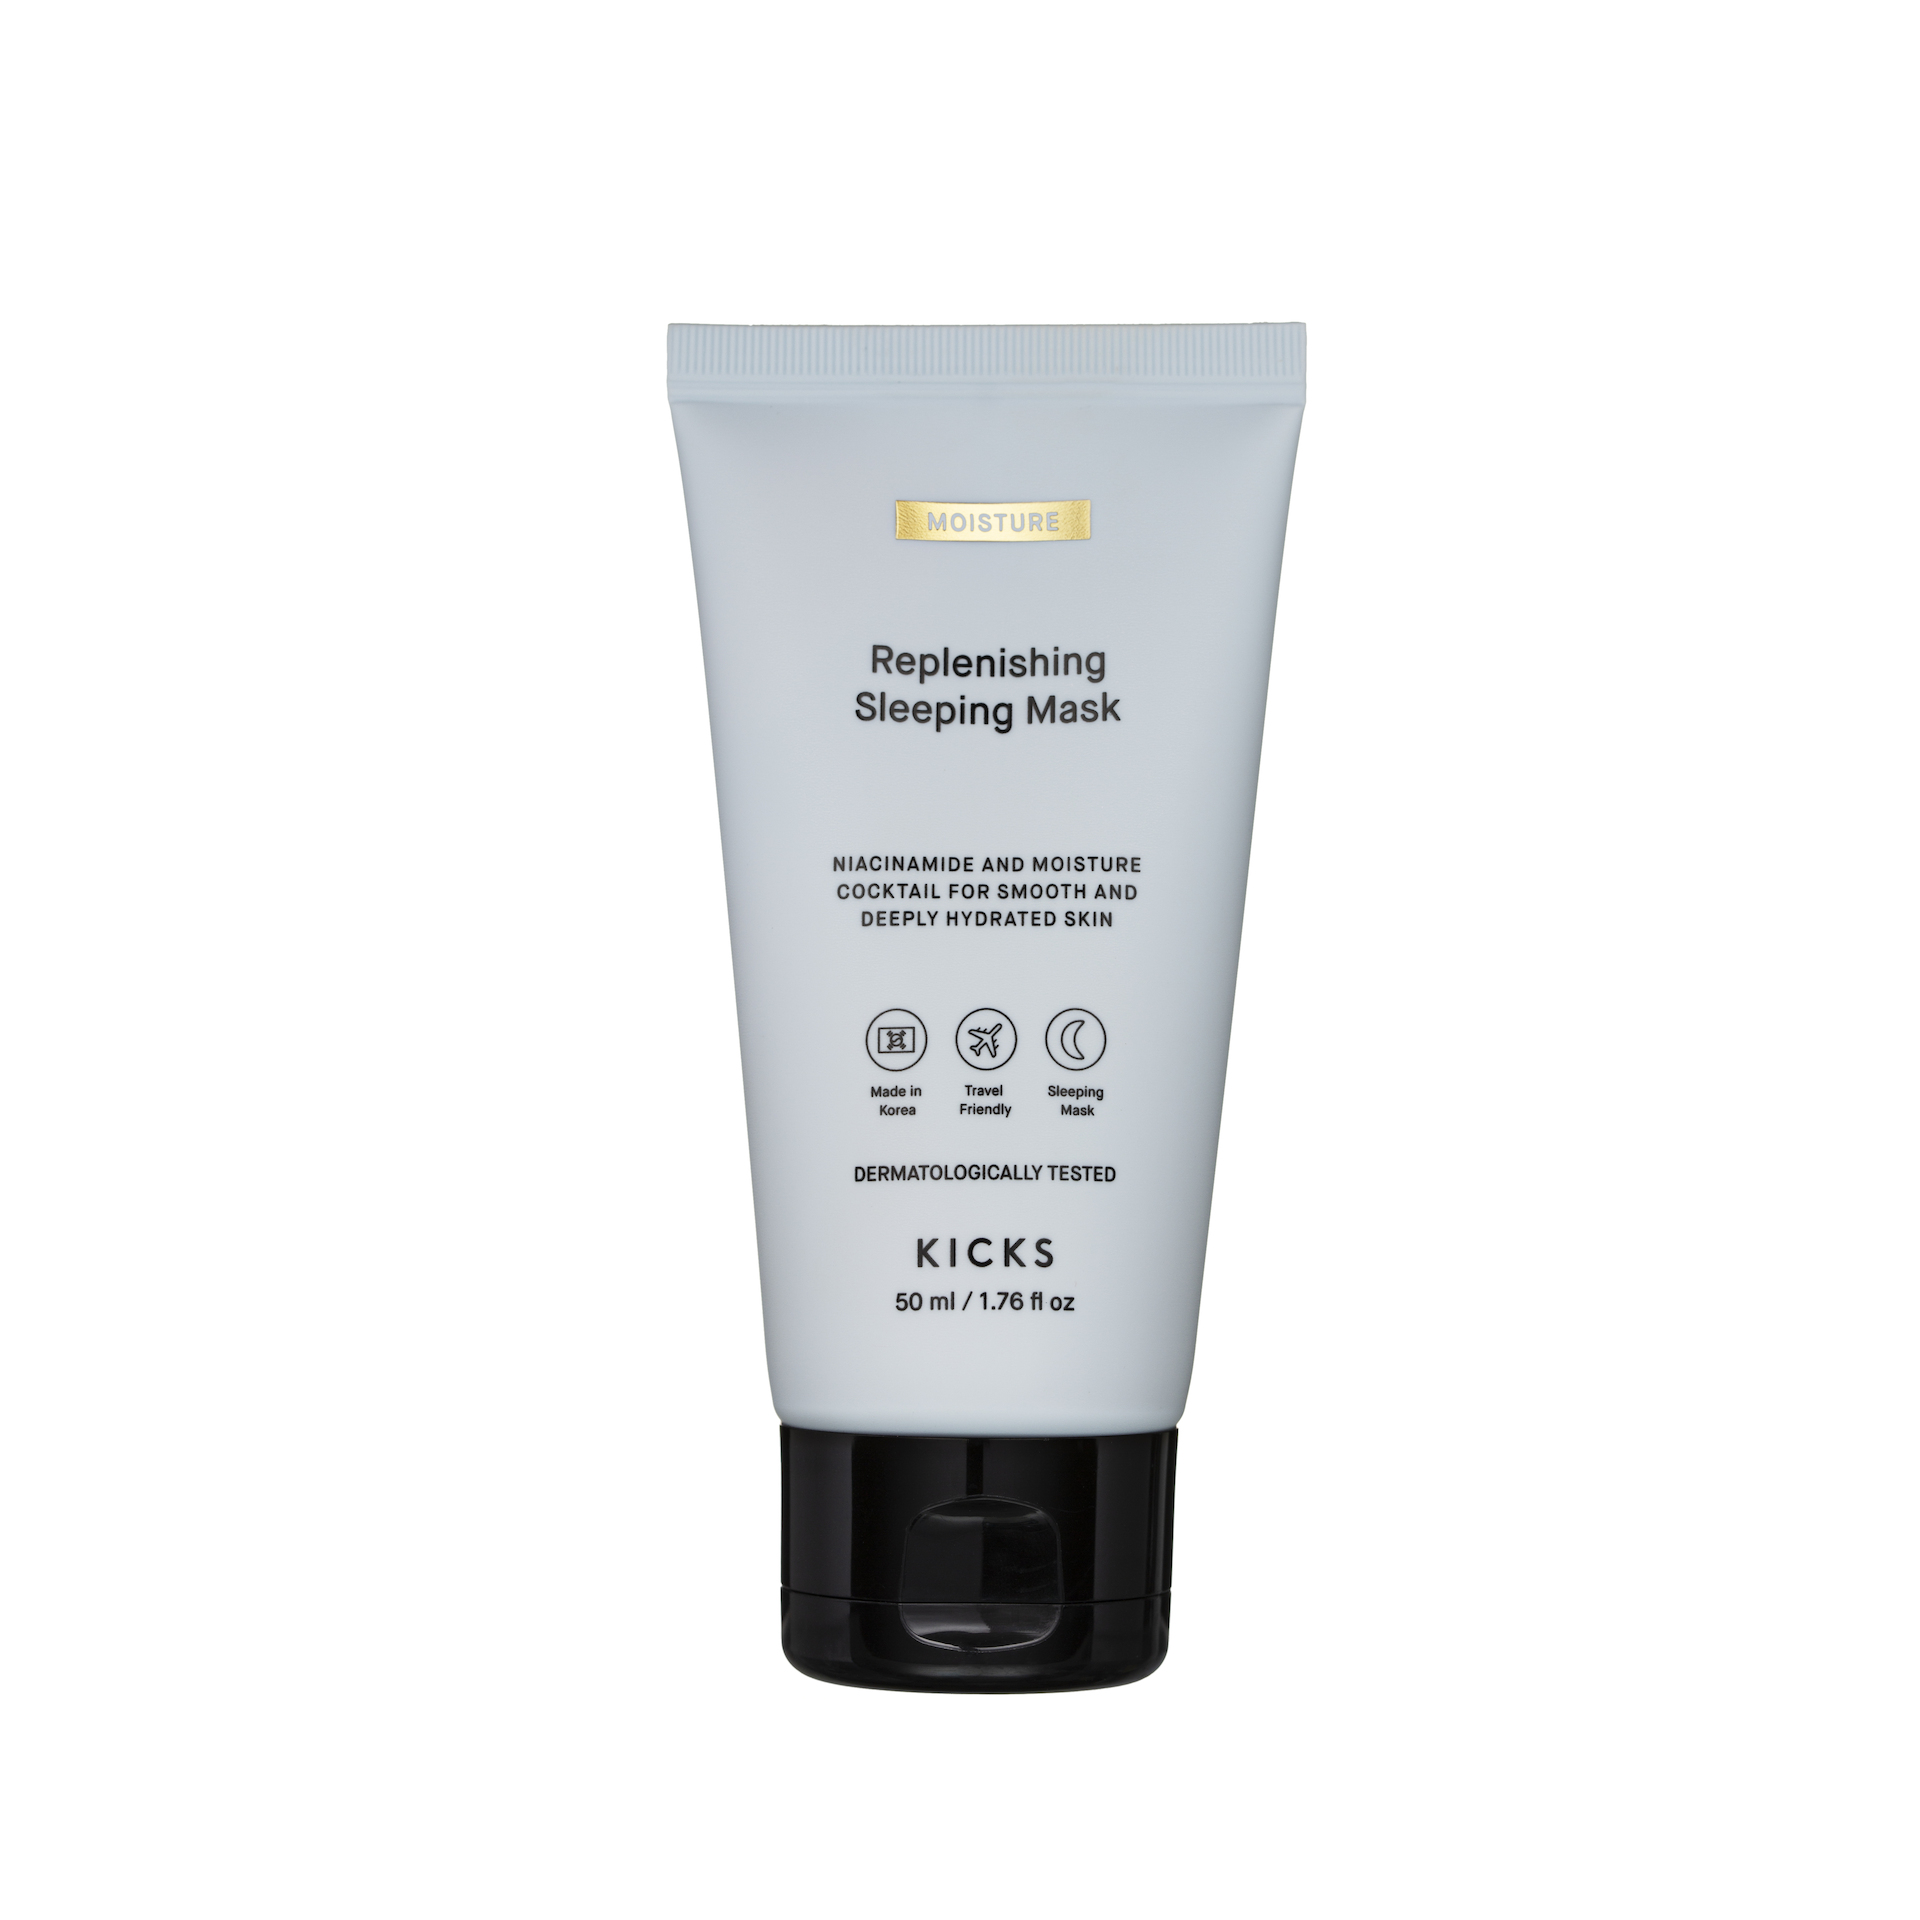 Moisture Replenishing Sleeping Mask